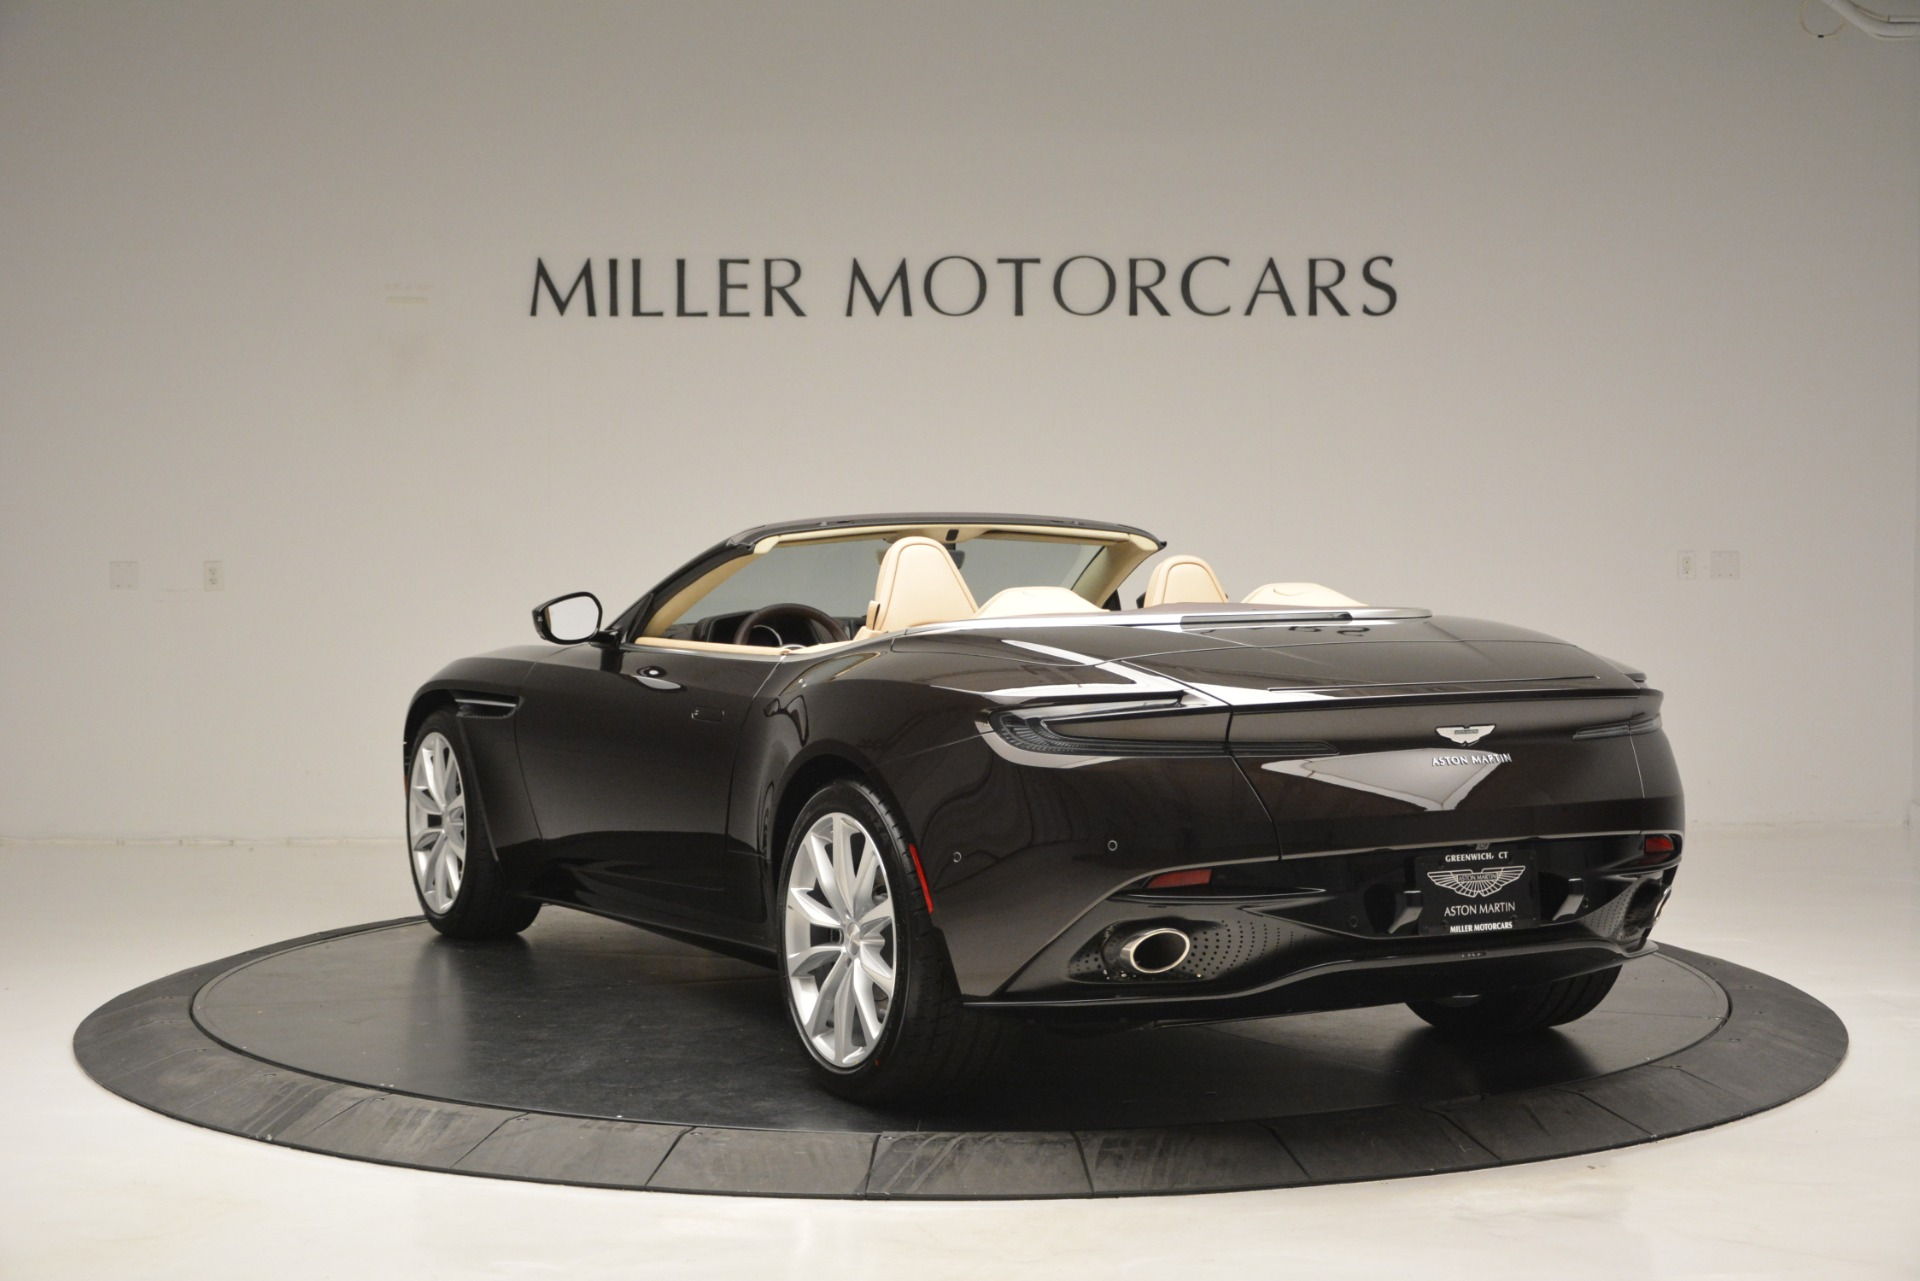 New 2019 Aston Martin DB11 Volante For Sale In Westport, CT 2905_p5